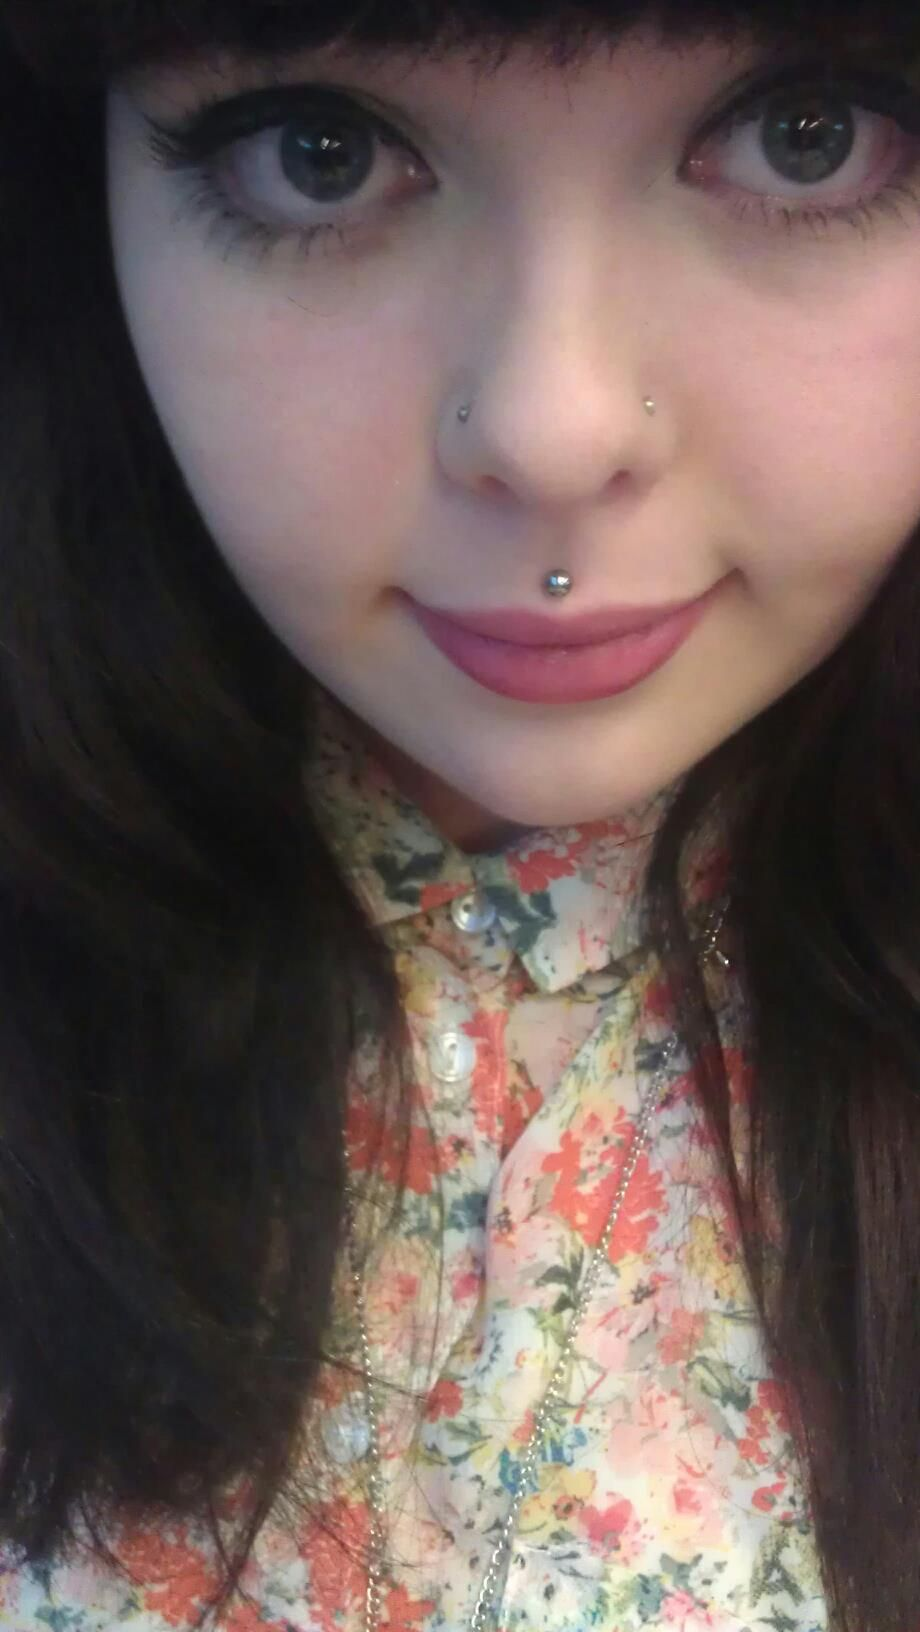 Nose piercing hole scar  double nose piercing and Medusa piercing done between the age of